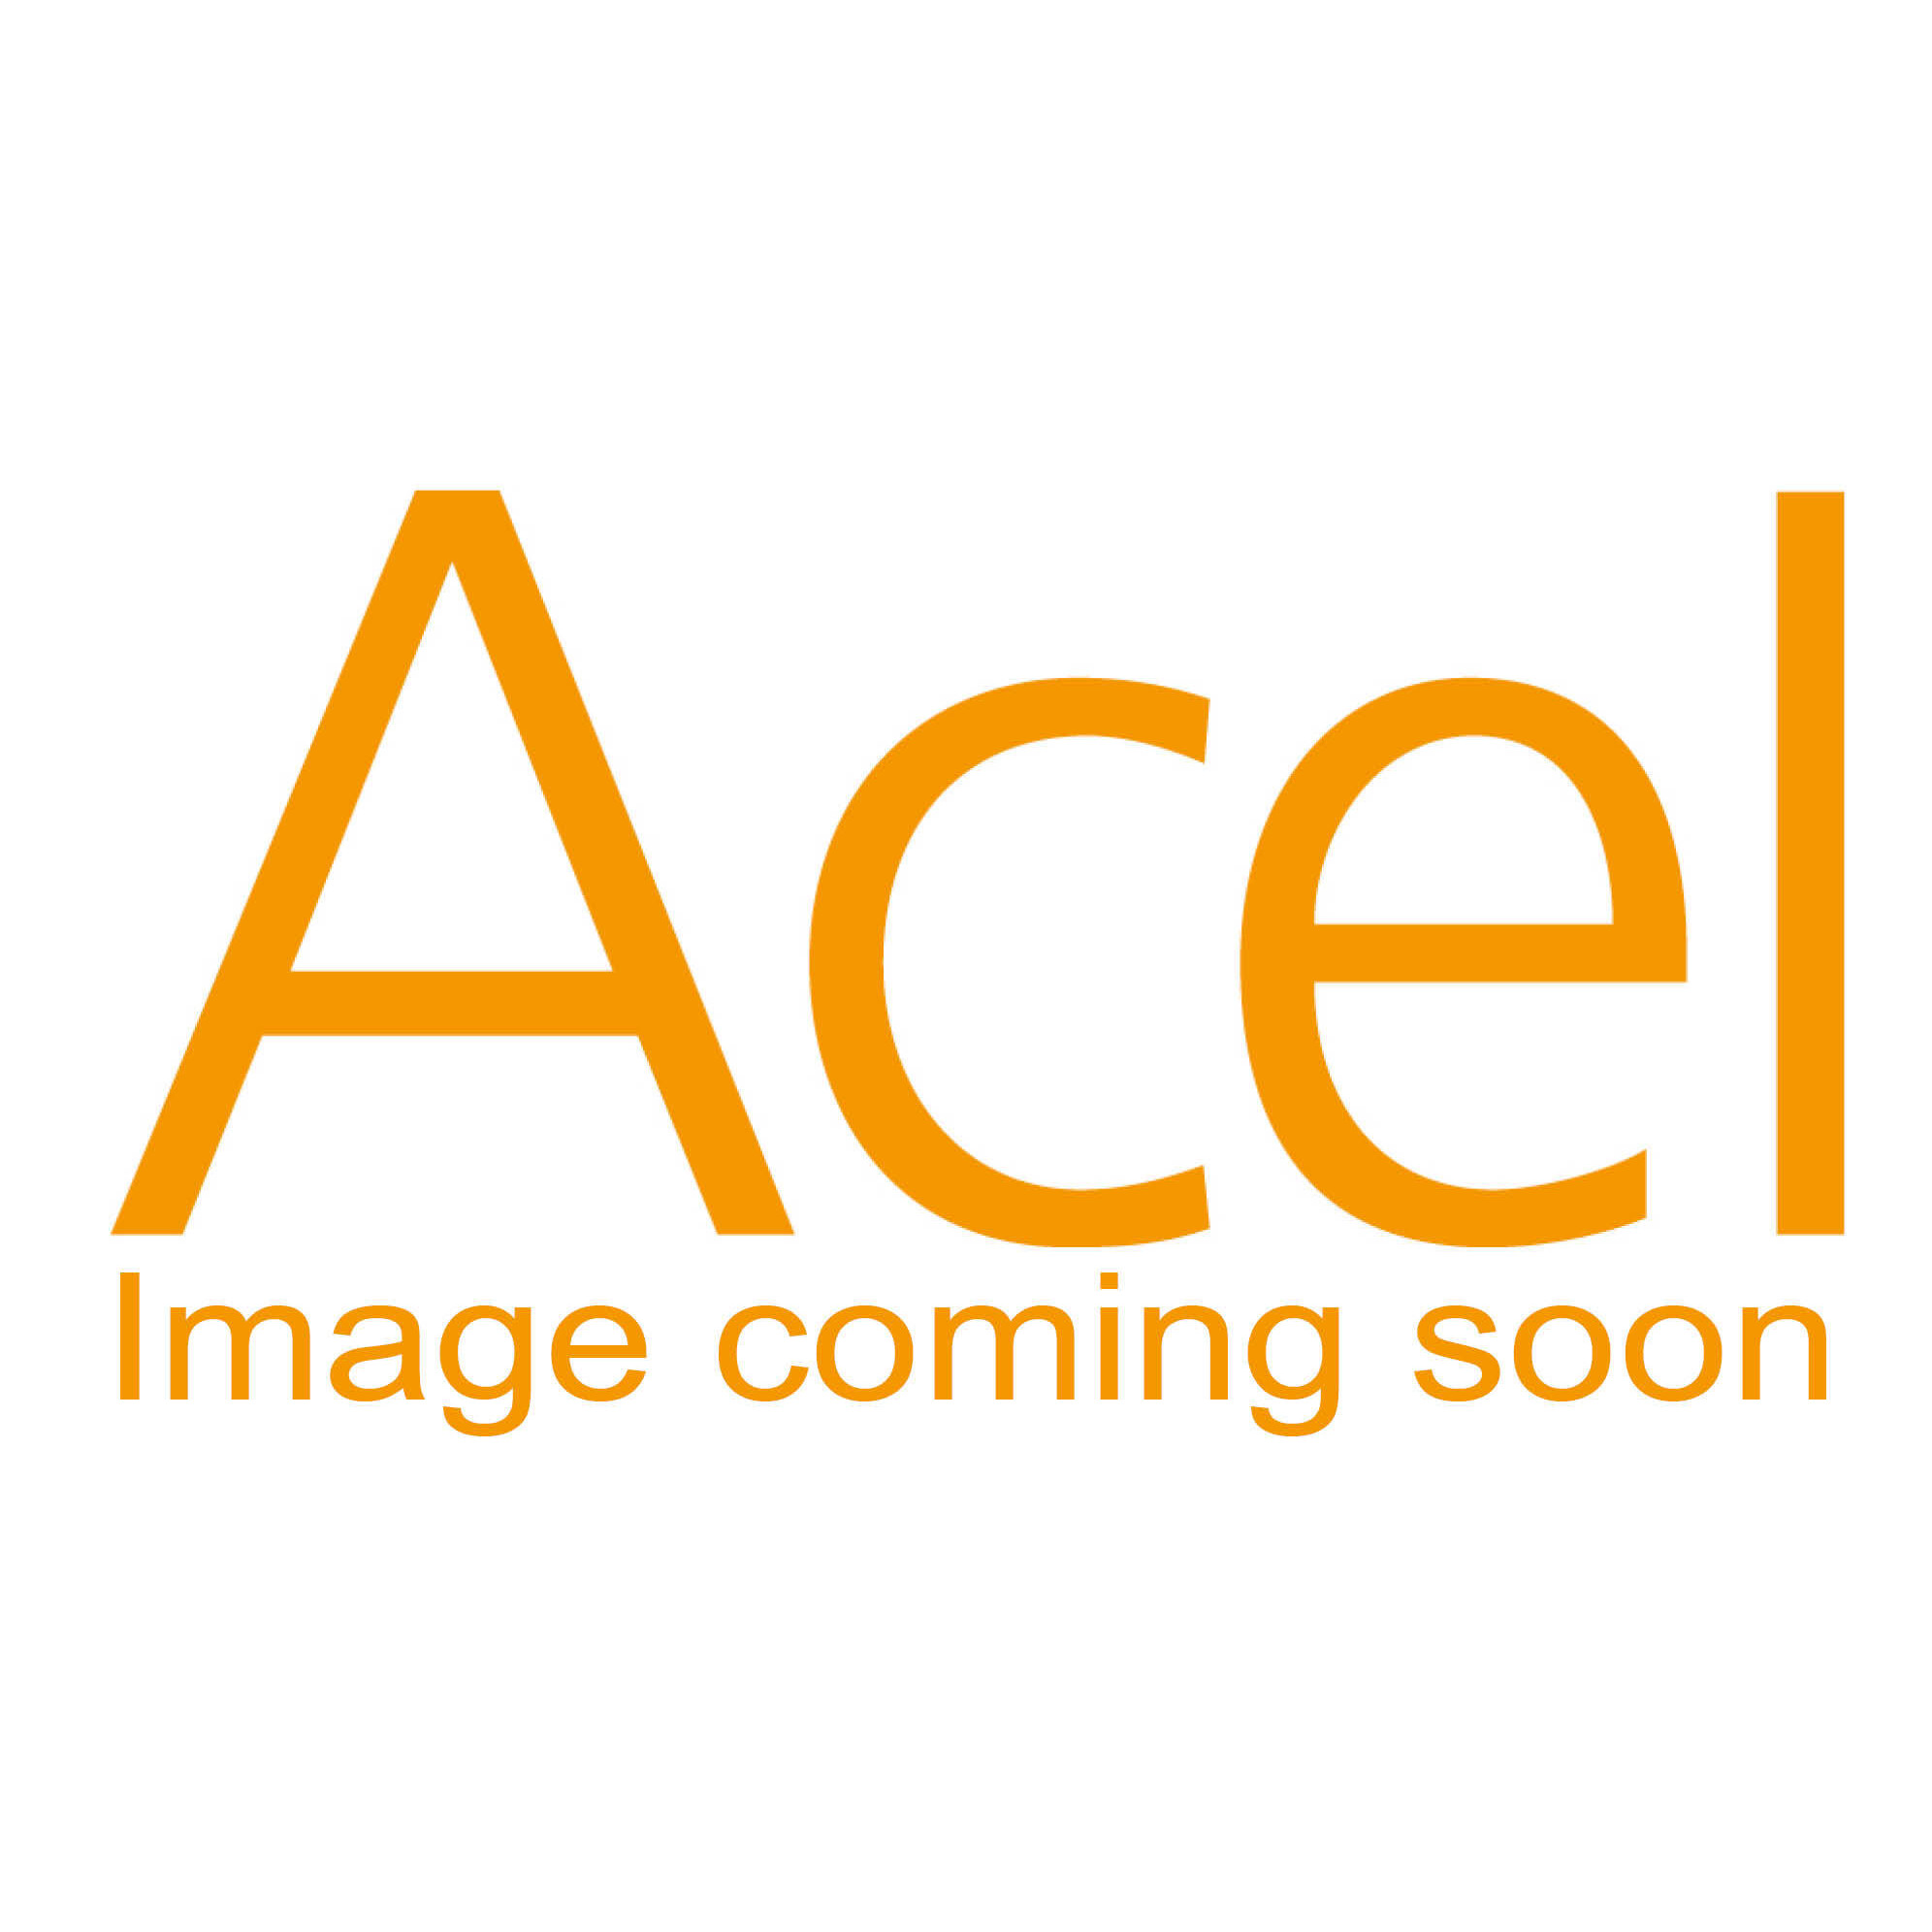 Self Adhesive Vinyl labels - Fire alarm do not switch off label - 75 x 25mm Pk10